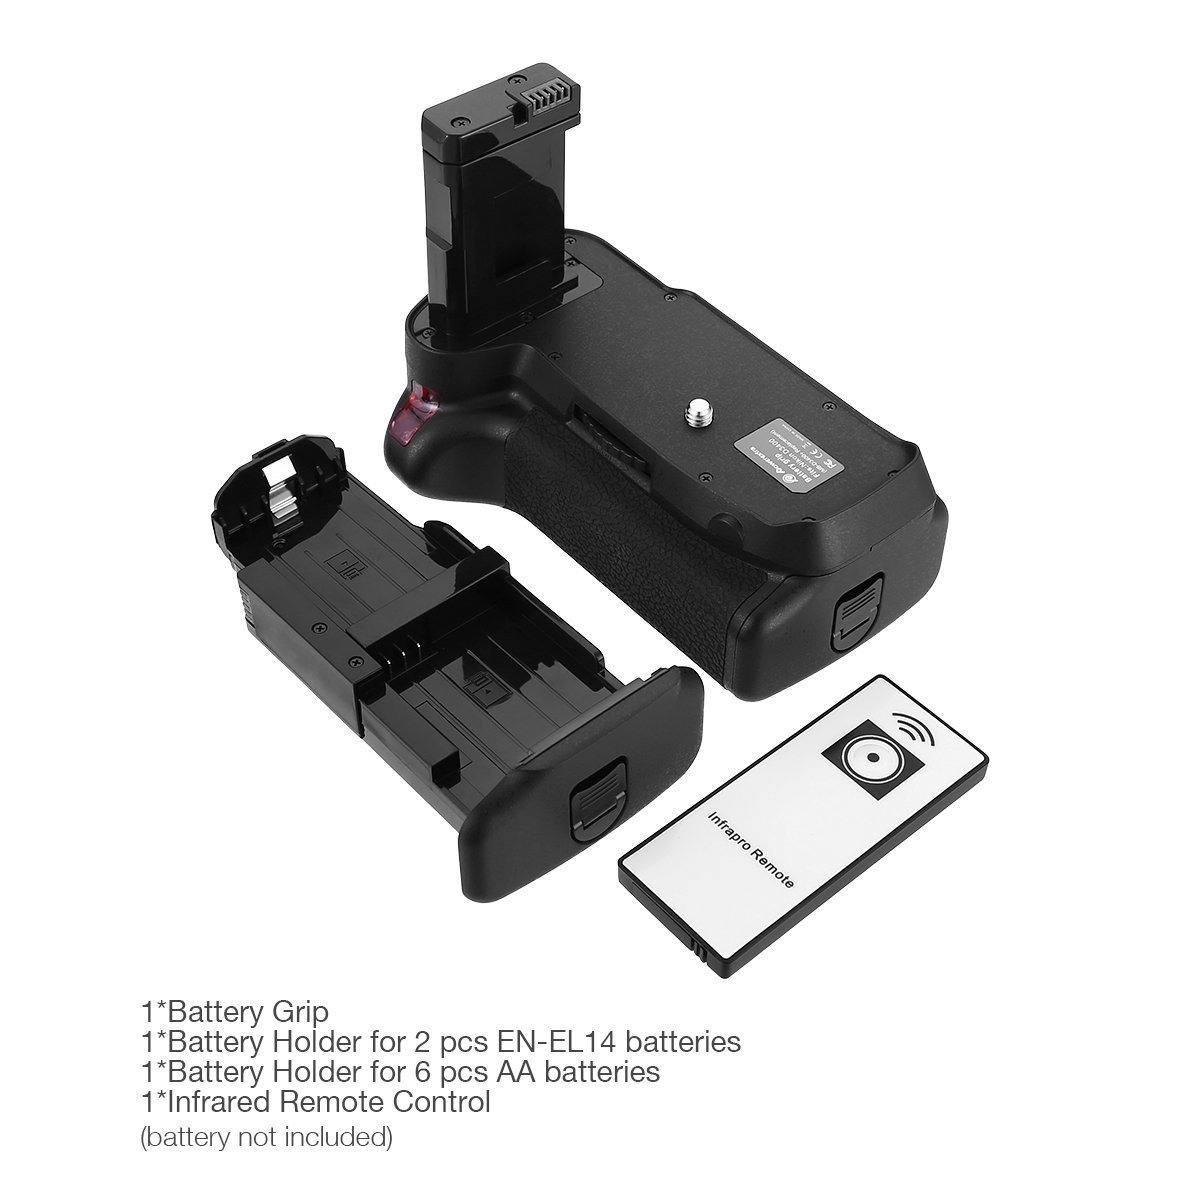 Powerextra Battery Grip For Nikon D3400 Digital Slr Camera With Infra Red Remote Control 61umqfbyuol Sl1200